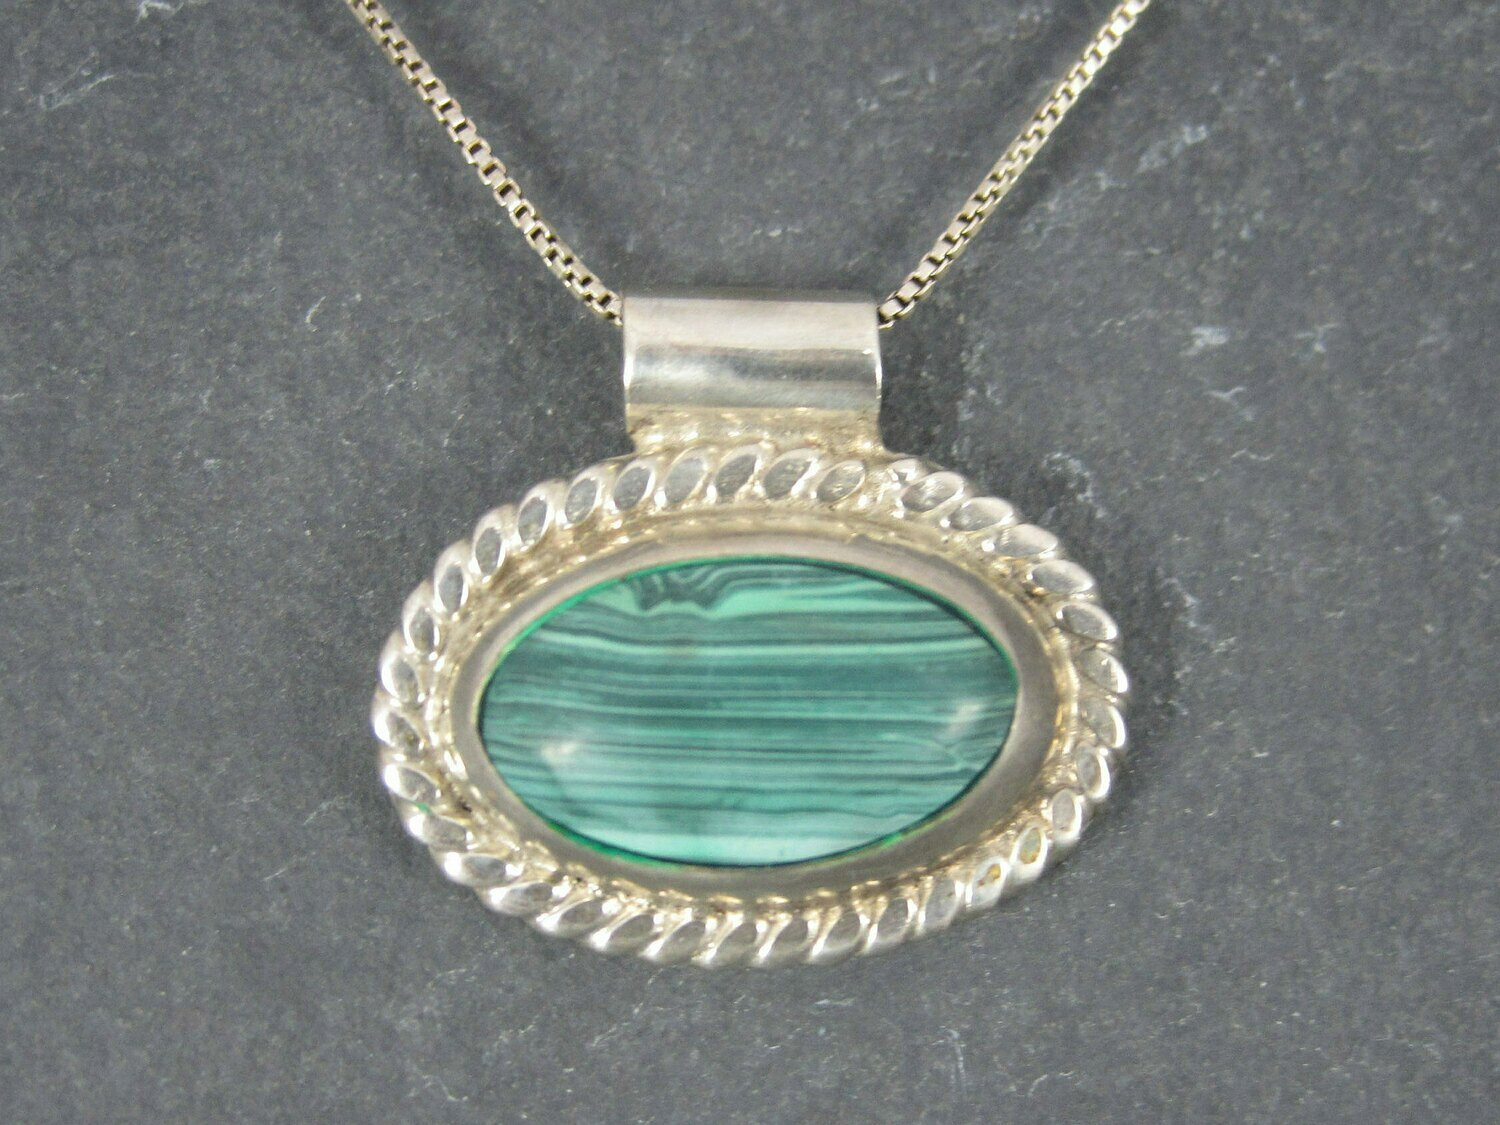 Vintage Mexican Sterling Malachite Pendant Necklace